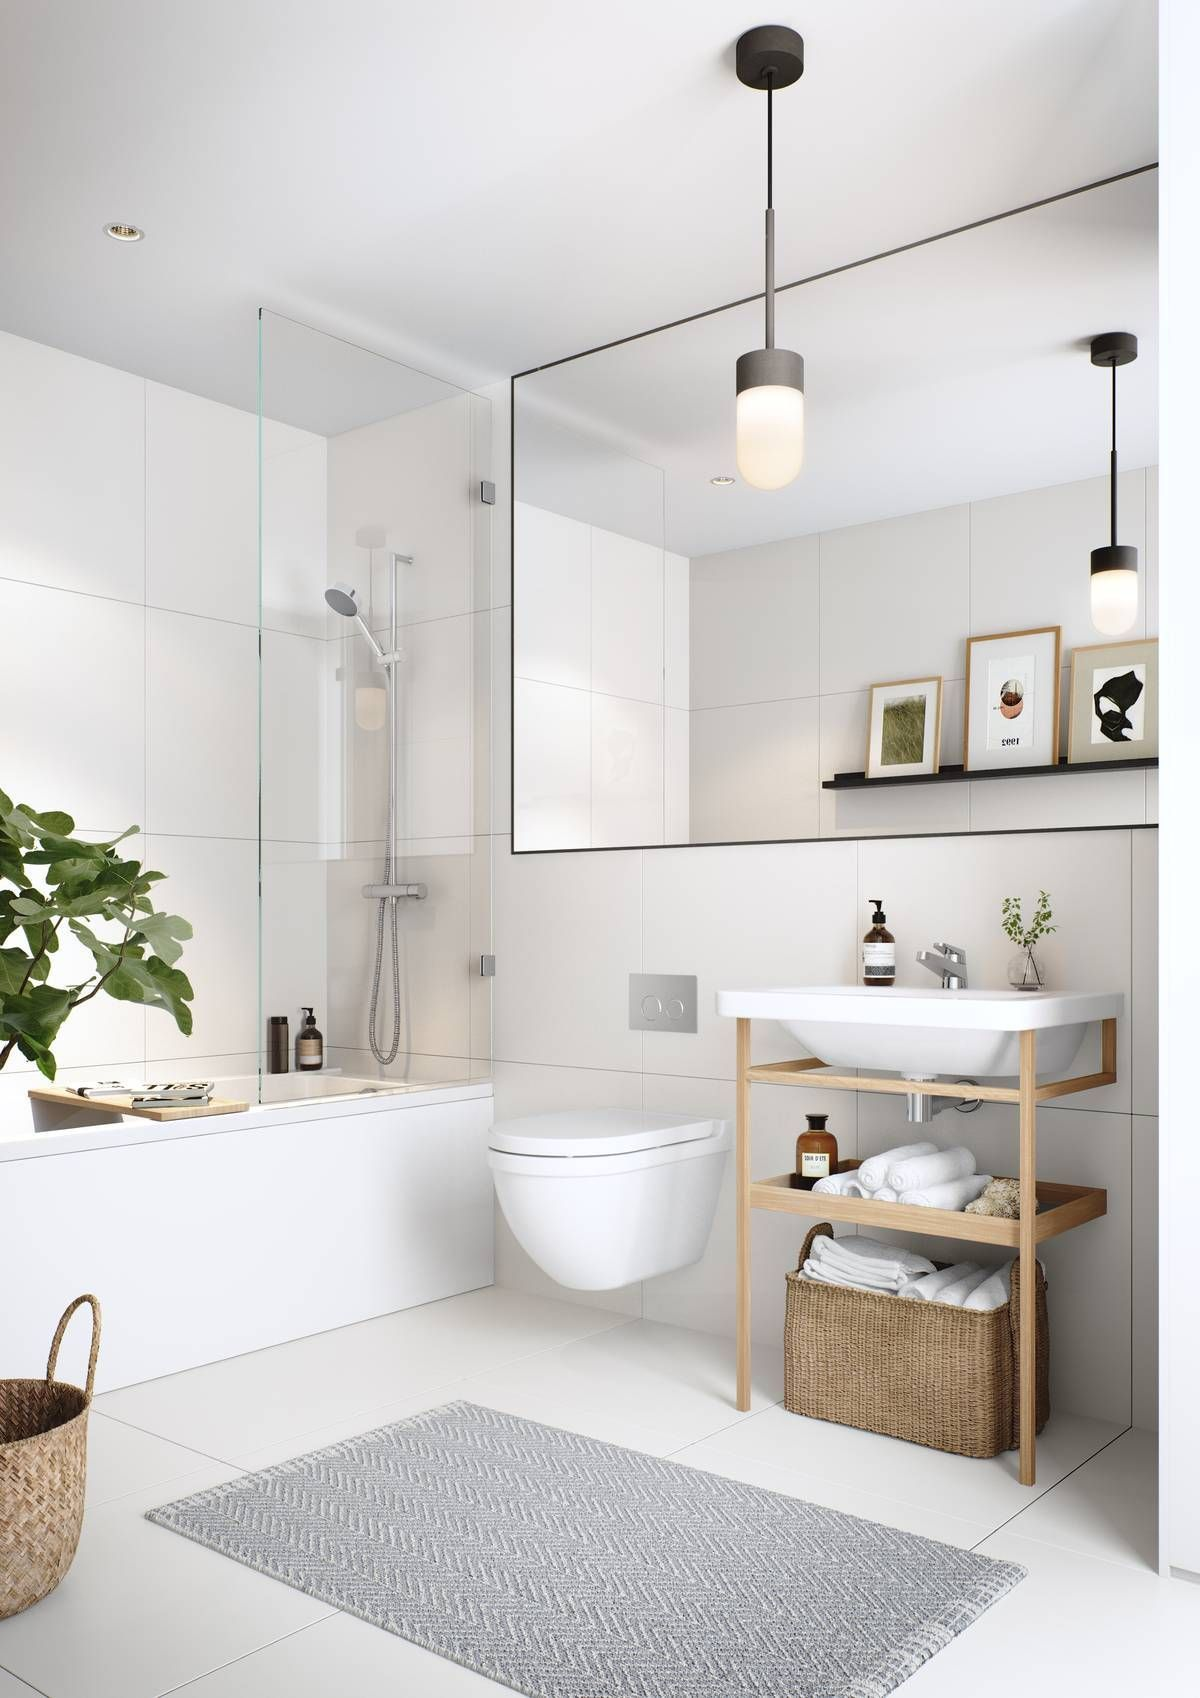 Life Deluxe | Like items | Pinterest | Bathroom layout, Interiors ...